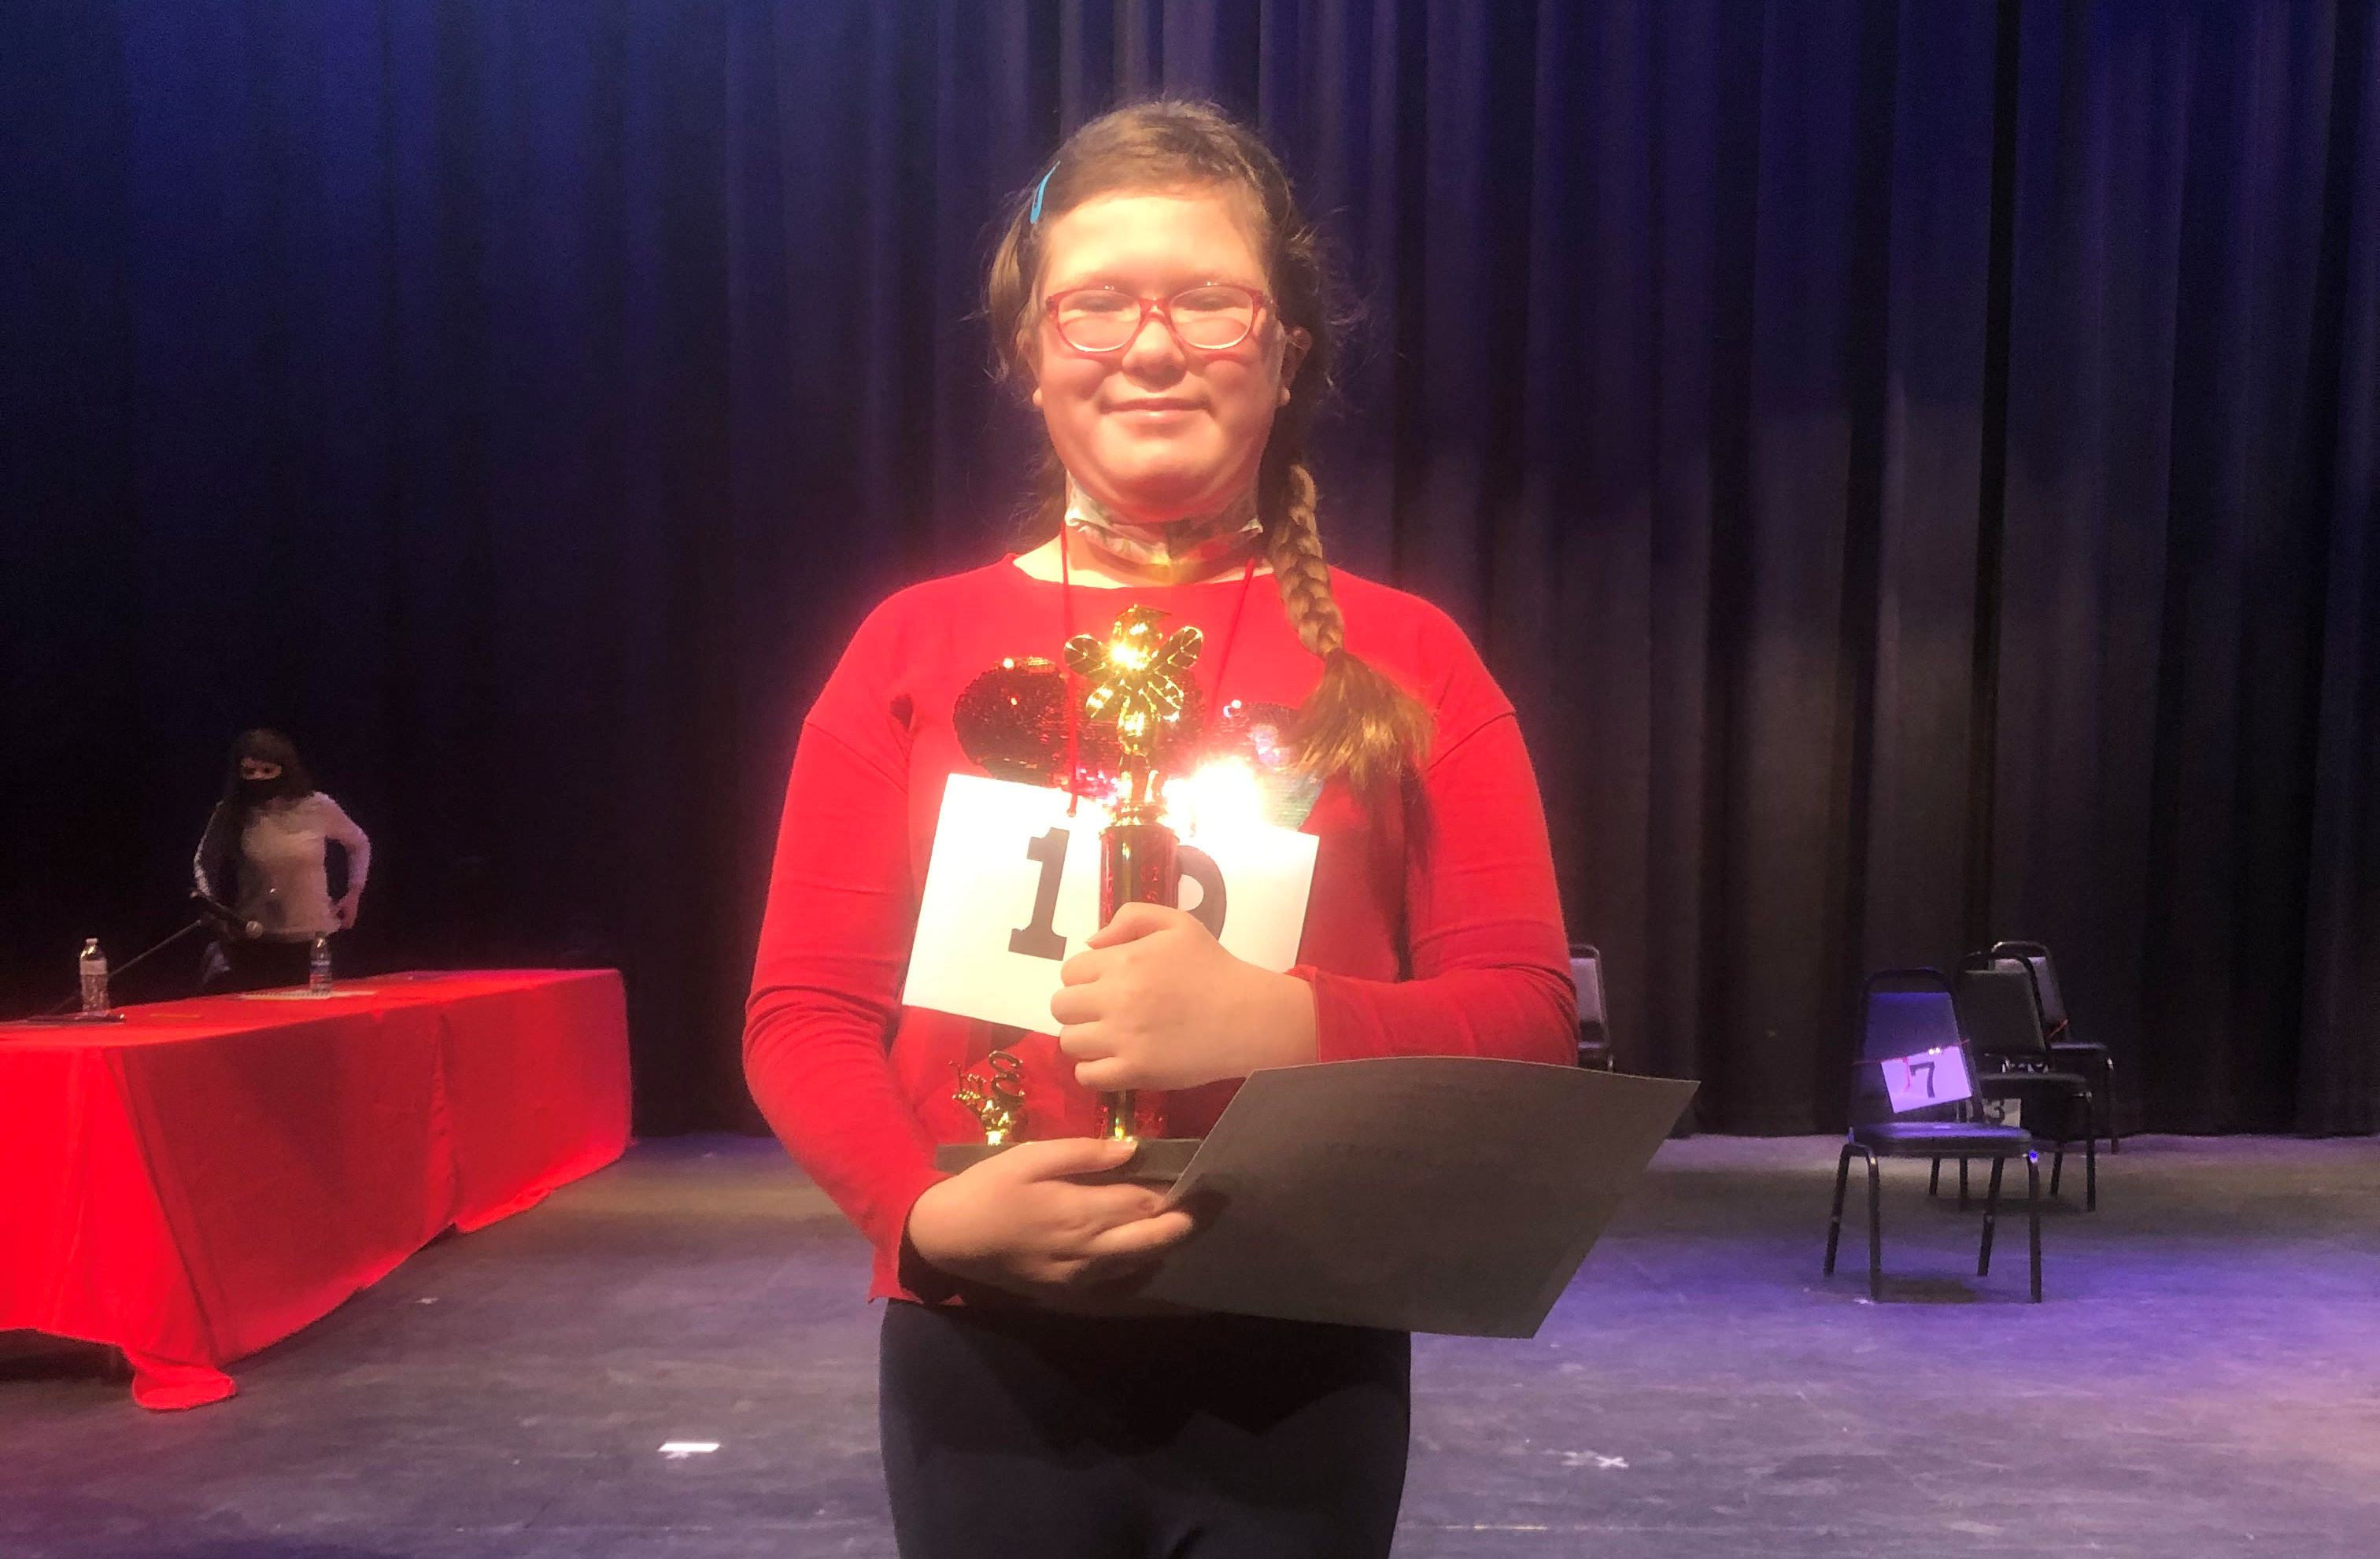 3rd Place Spelling Bee Winner Anna Cooney